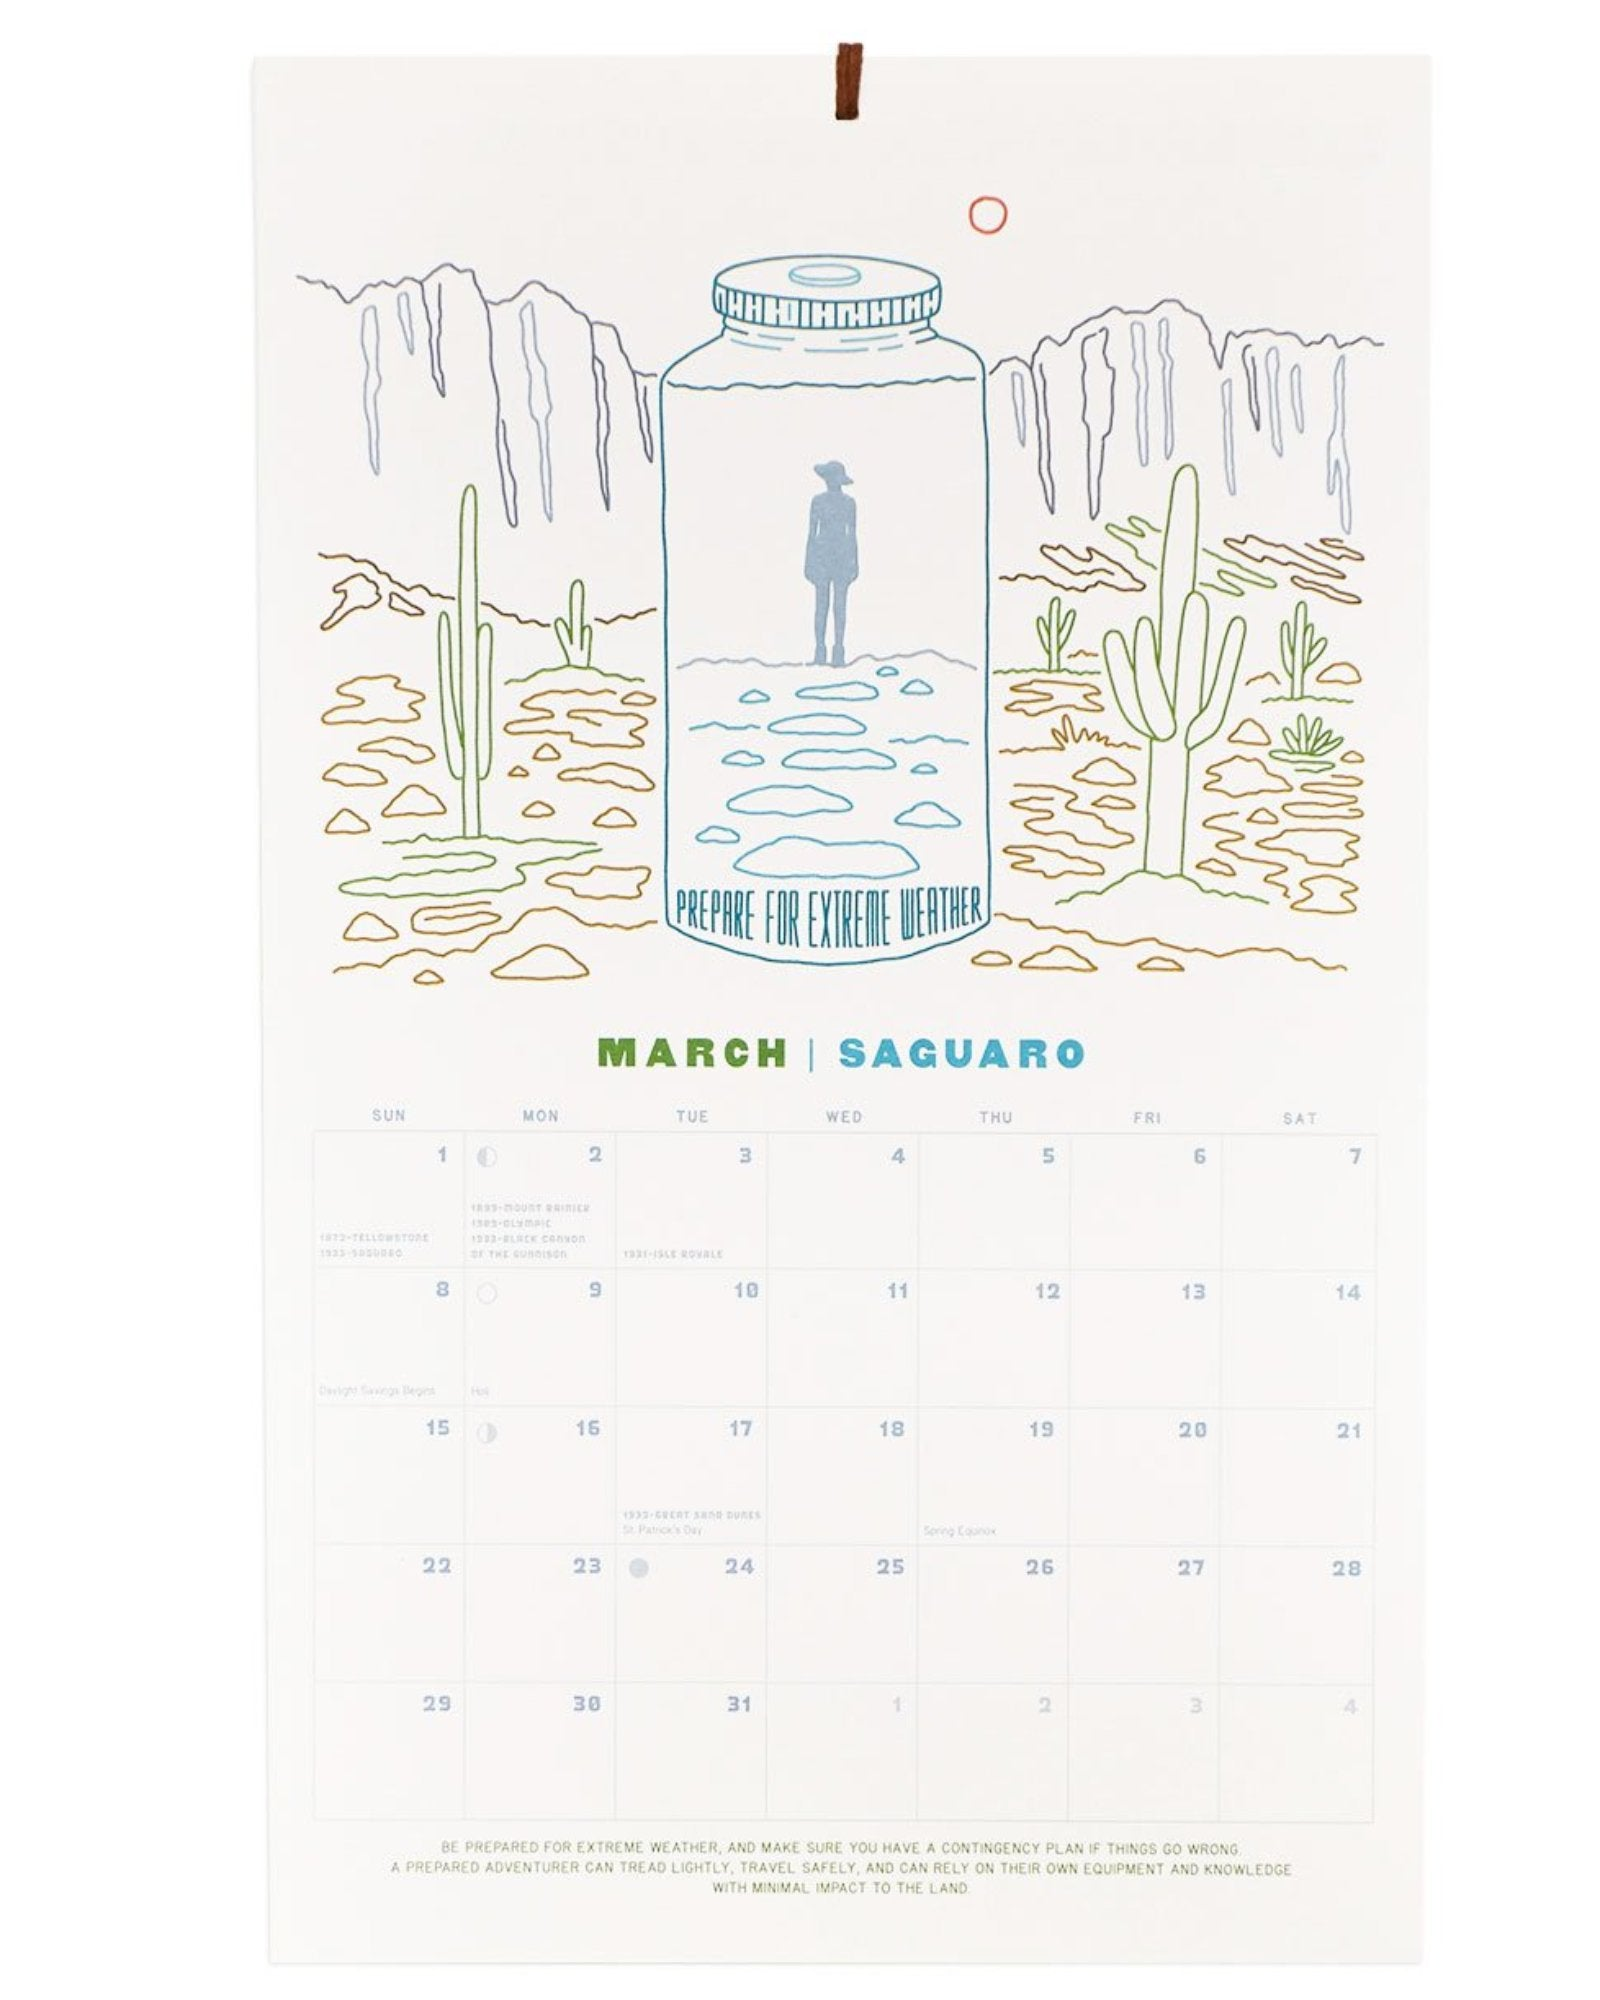 Protect Our National Parks 2020 Wall Calendar